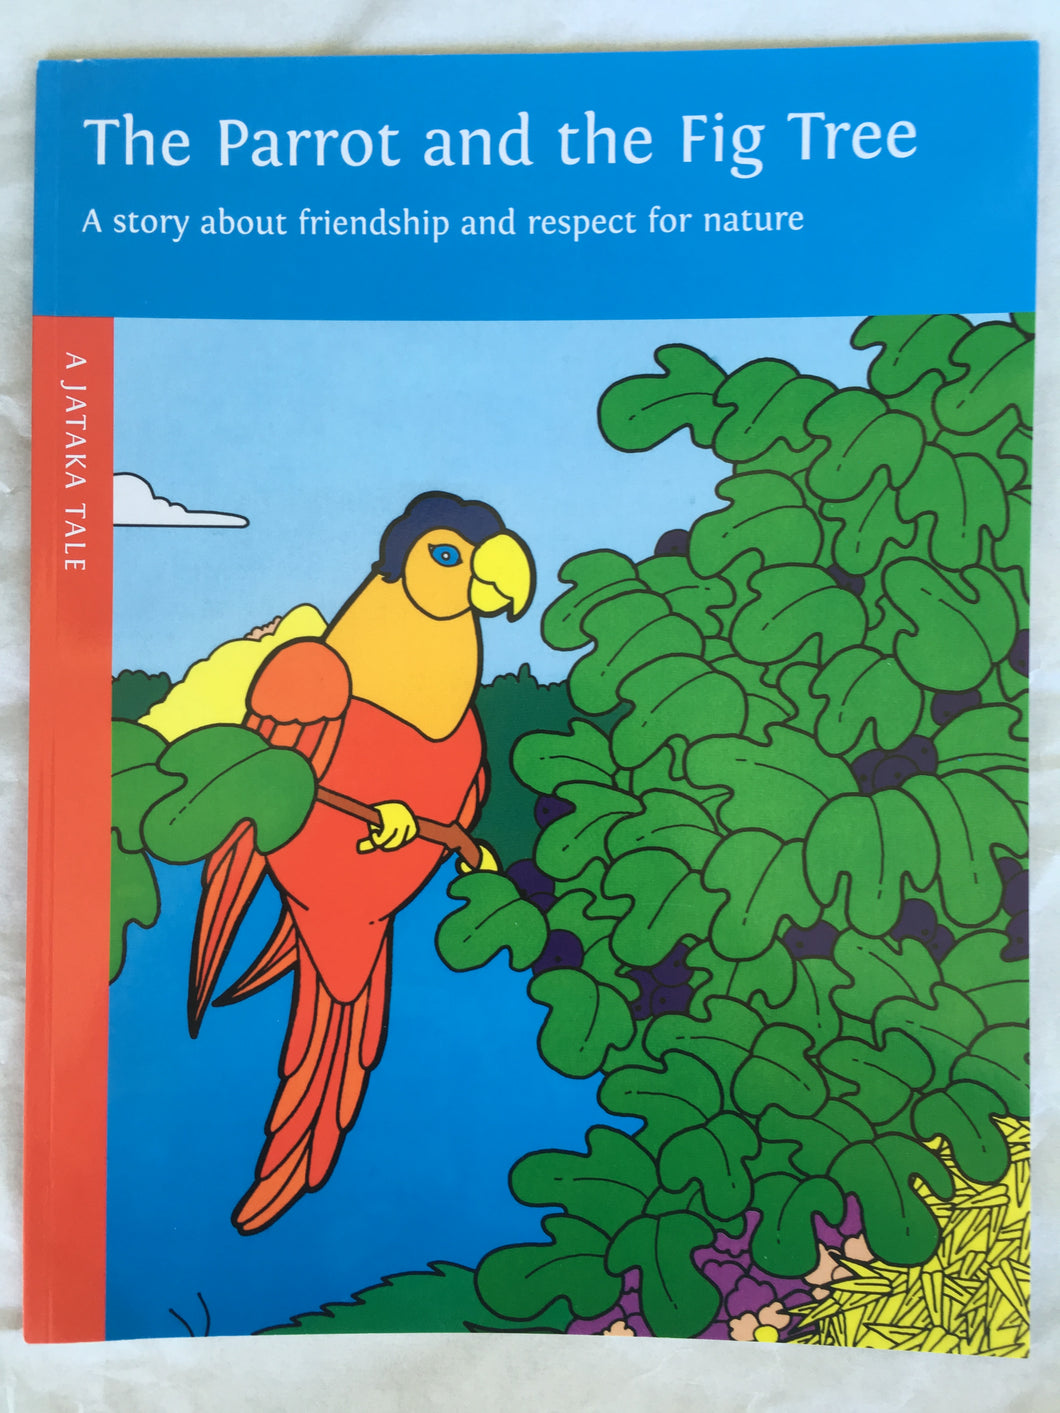 children's story book - the parrot and the fig tree - front cover